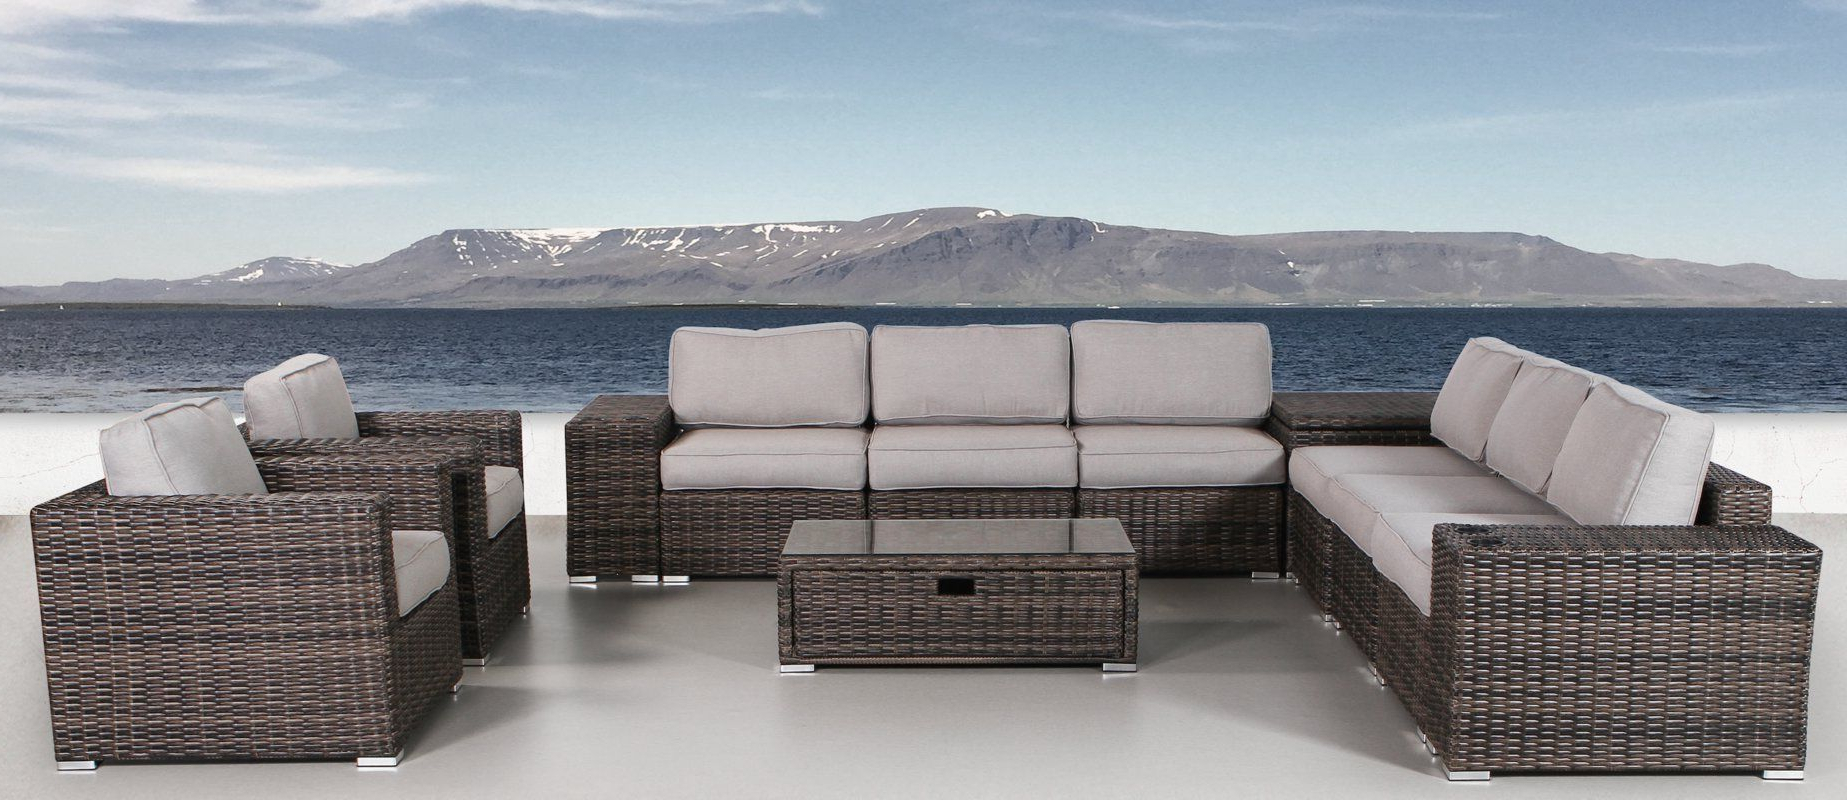 Nolen Patio Sectionals With Cushions Within Fashionable Nolen 12 Piece Rattan Sectional Seating Group With Cushions (Gallery 3 of 20)